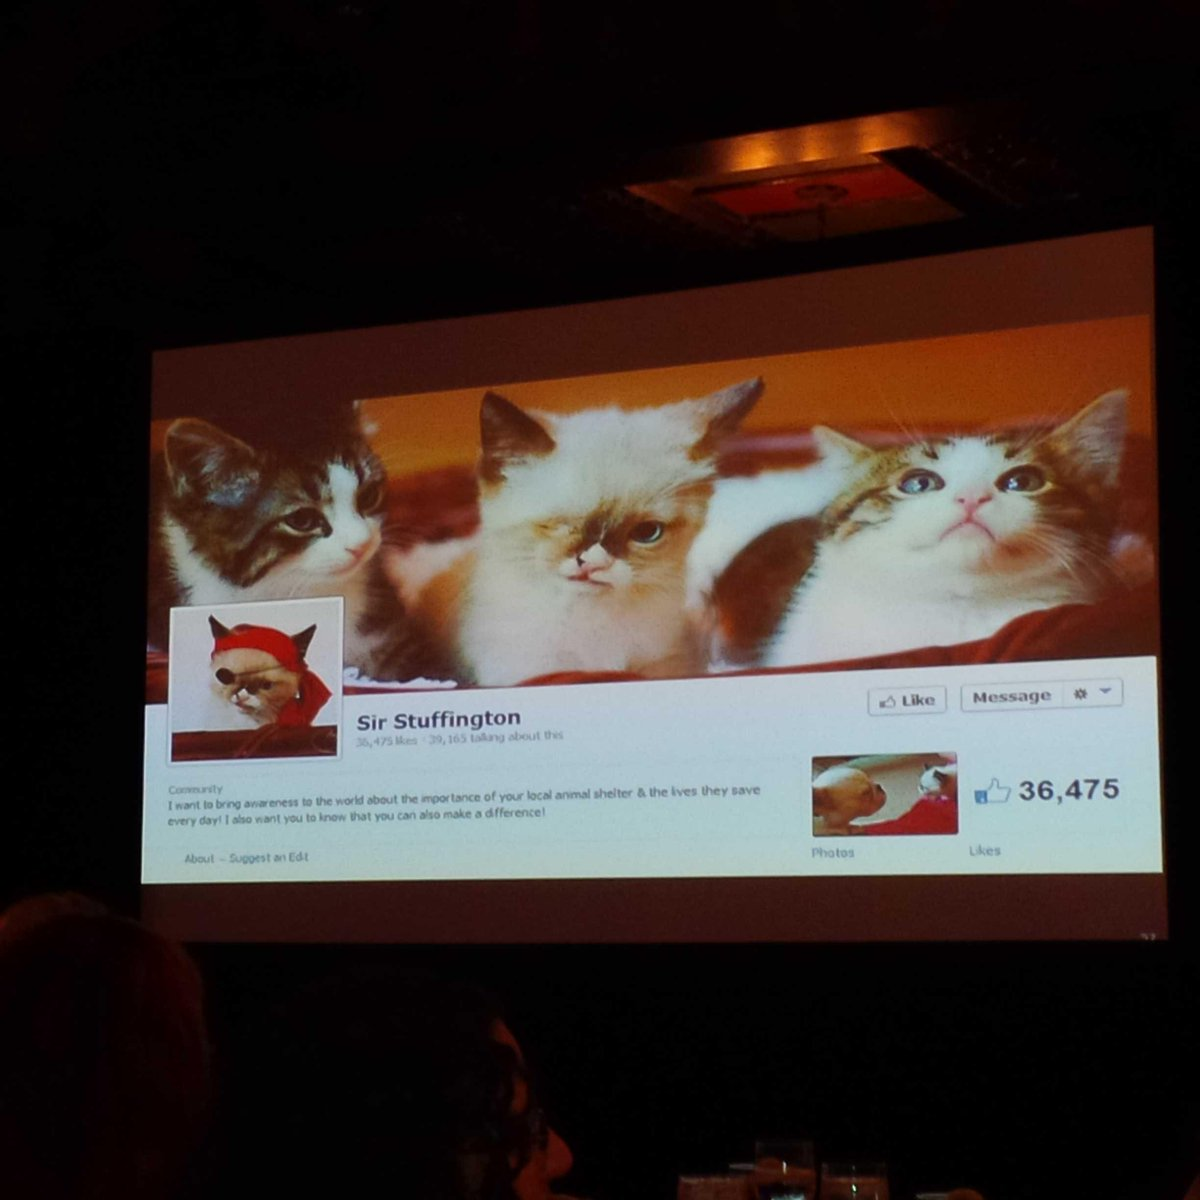 Sir Stuffington the cat shows power of using networks & relationships to bring change. @Celgene #patientspartners. http://t.co/IwYK20uUr5